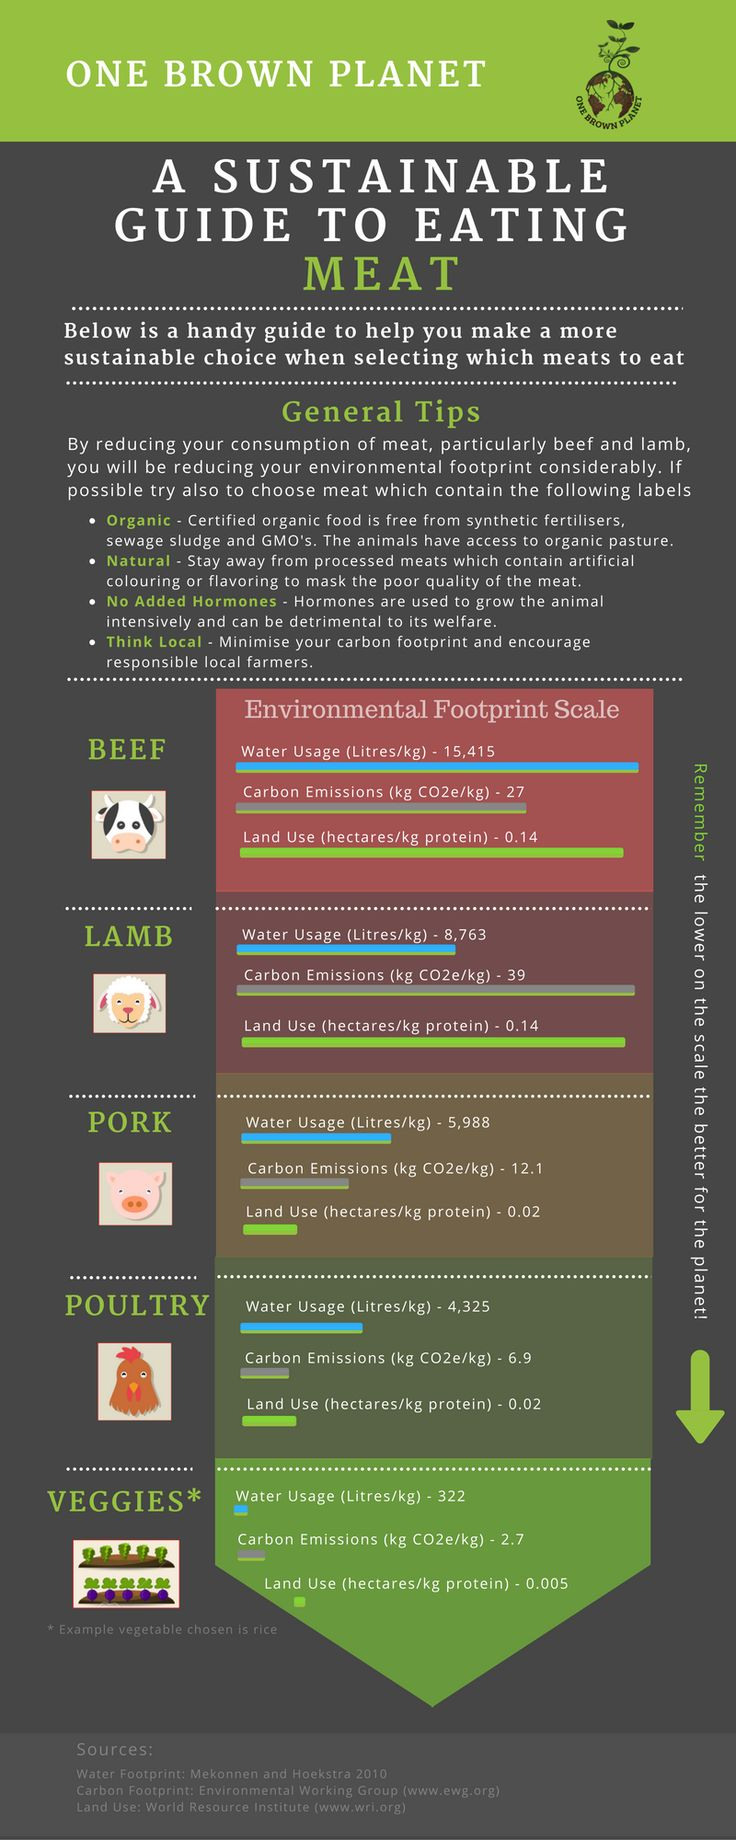 As part of One Brown Planets goal to help people live a more sustainable lifestyle, we have put together the sustainable meat infographic. We hope that this will help you make better choices when trying to decide what food to eat. Eating smarter can reduce your carbon footprint, water footprint and reduce deforestation. Amazing what a simple menu selection can do!